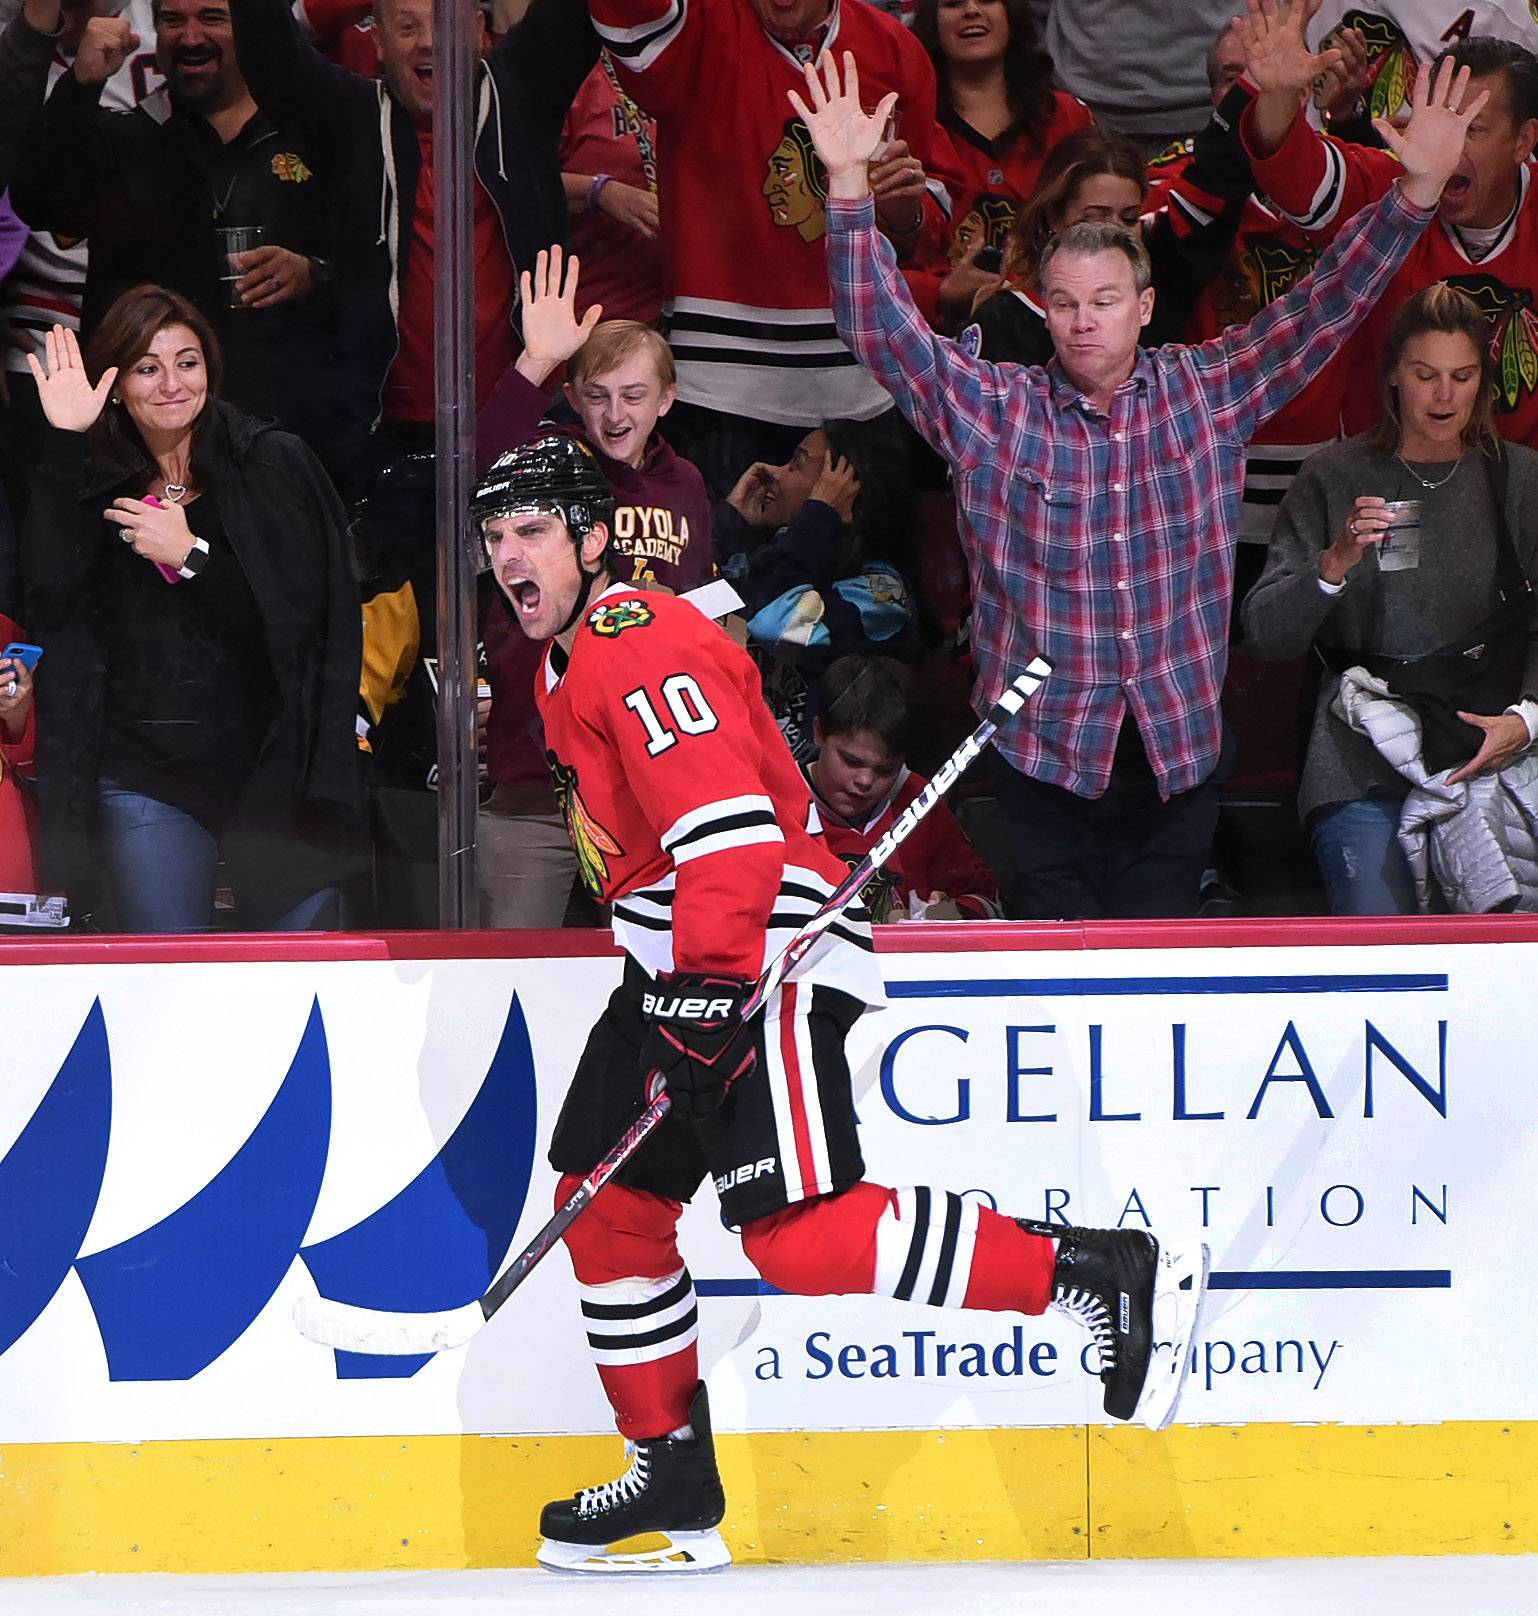 Chicago Blackhawks left wing Patrick Sharp says he's happy to be home after being sent packing to Dallas in 2015 as part of a salary cap move.